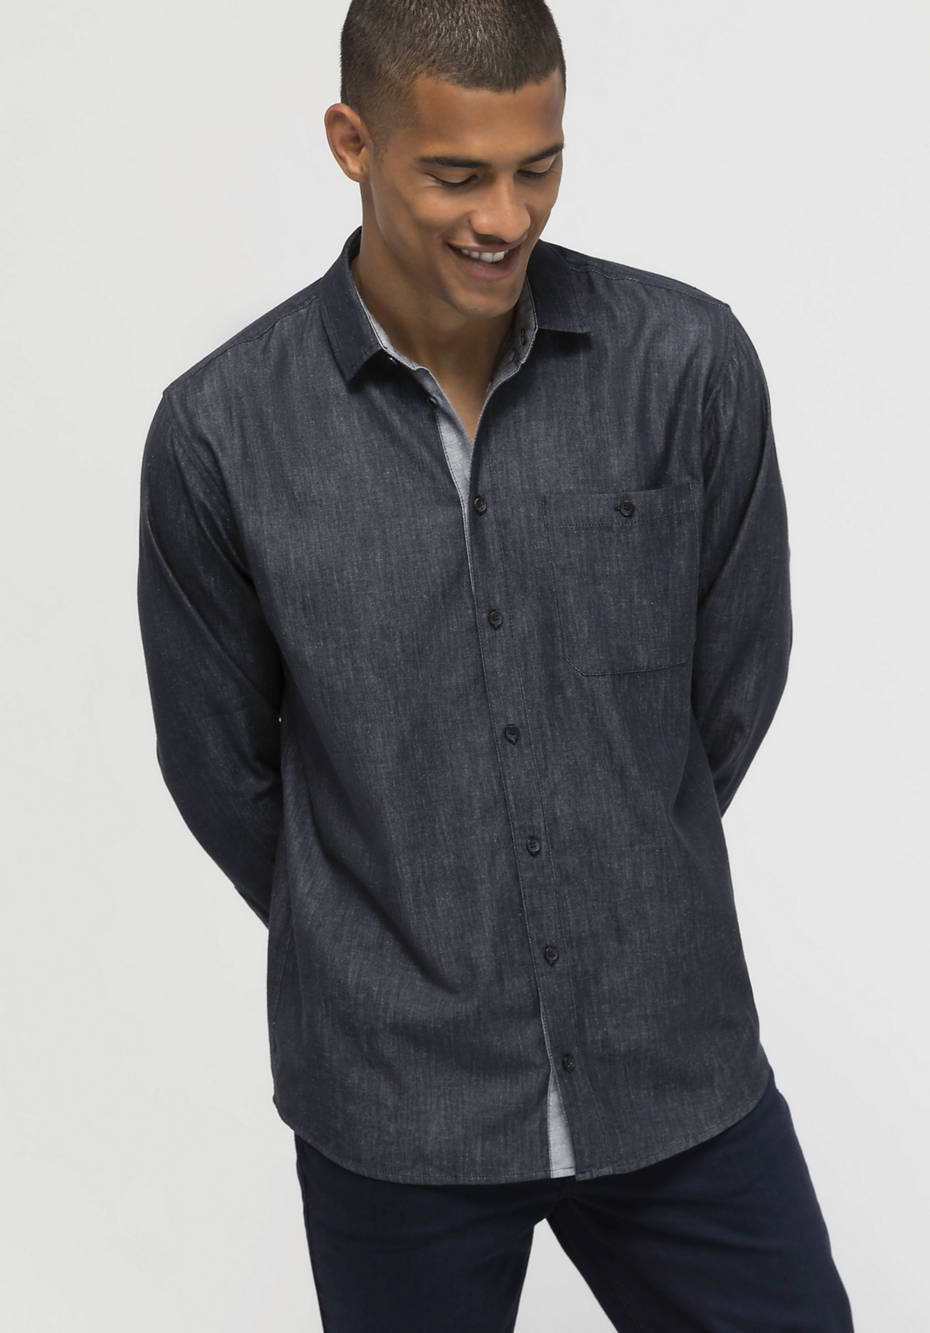 Comfort Fit shirt made of organic cotton with hemp and yak